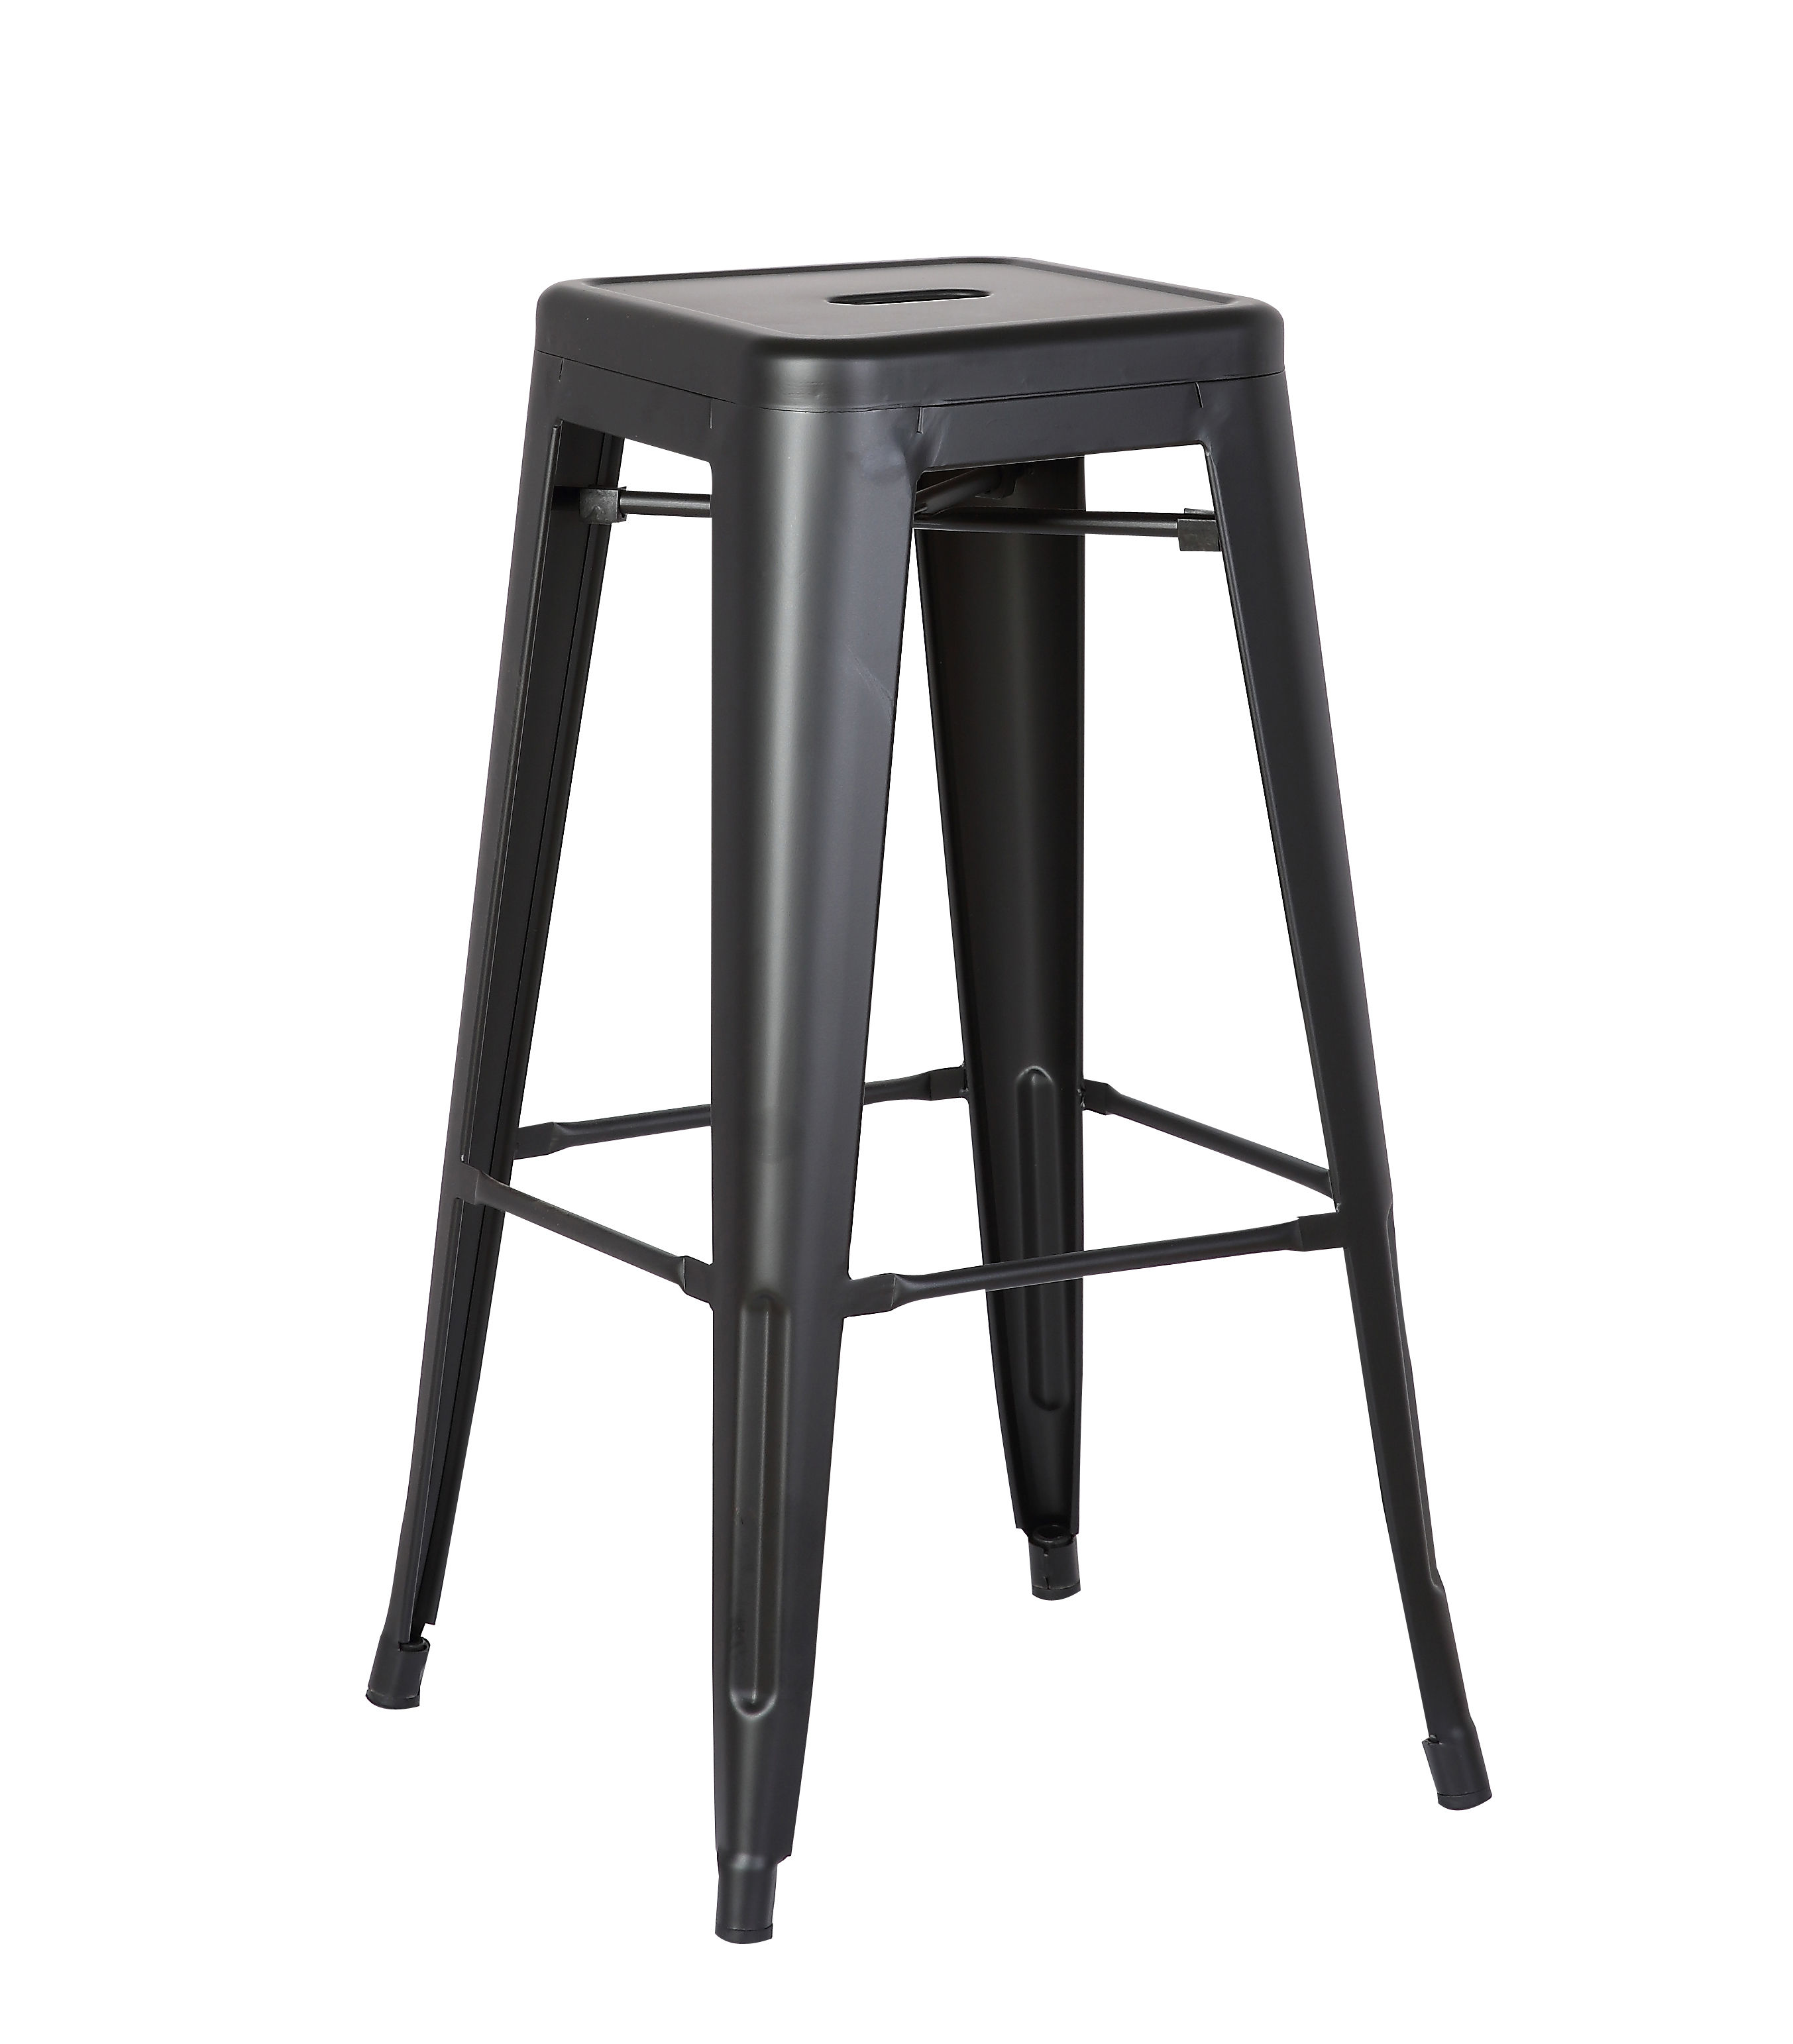 2 Ac Pacific Acbs01 Matte Black Costal Metal 30 Inch Bar Stools